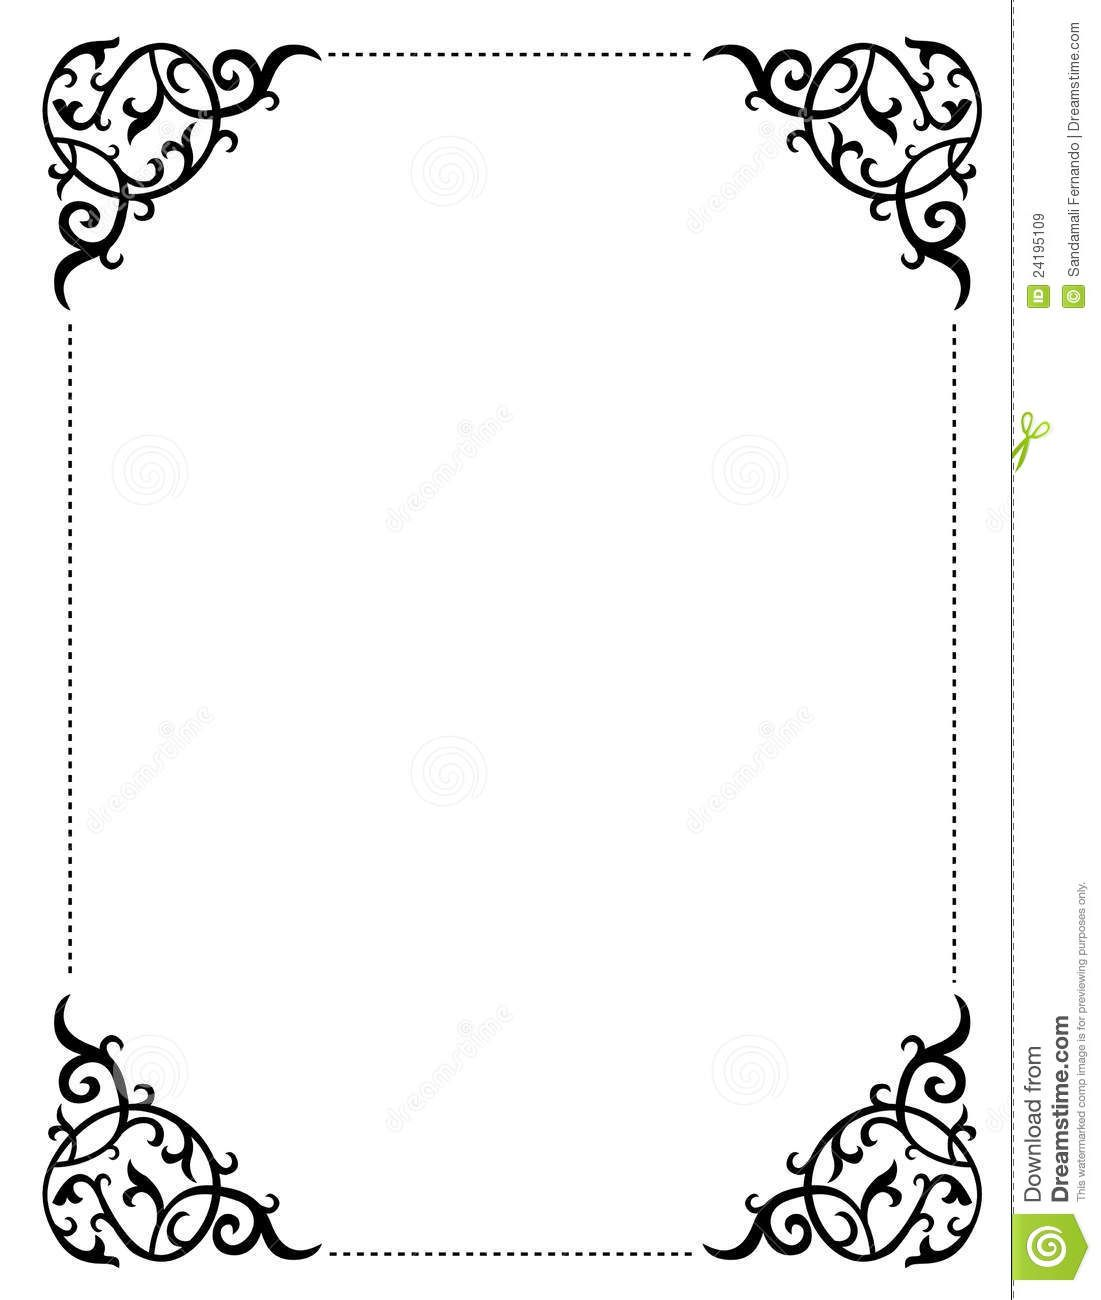 Free Printable Wedding Clip Art Borders And Backgrounds.